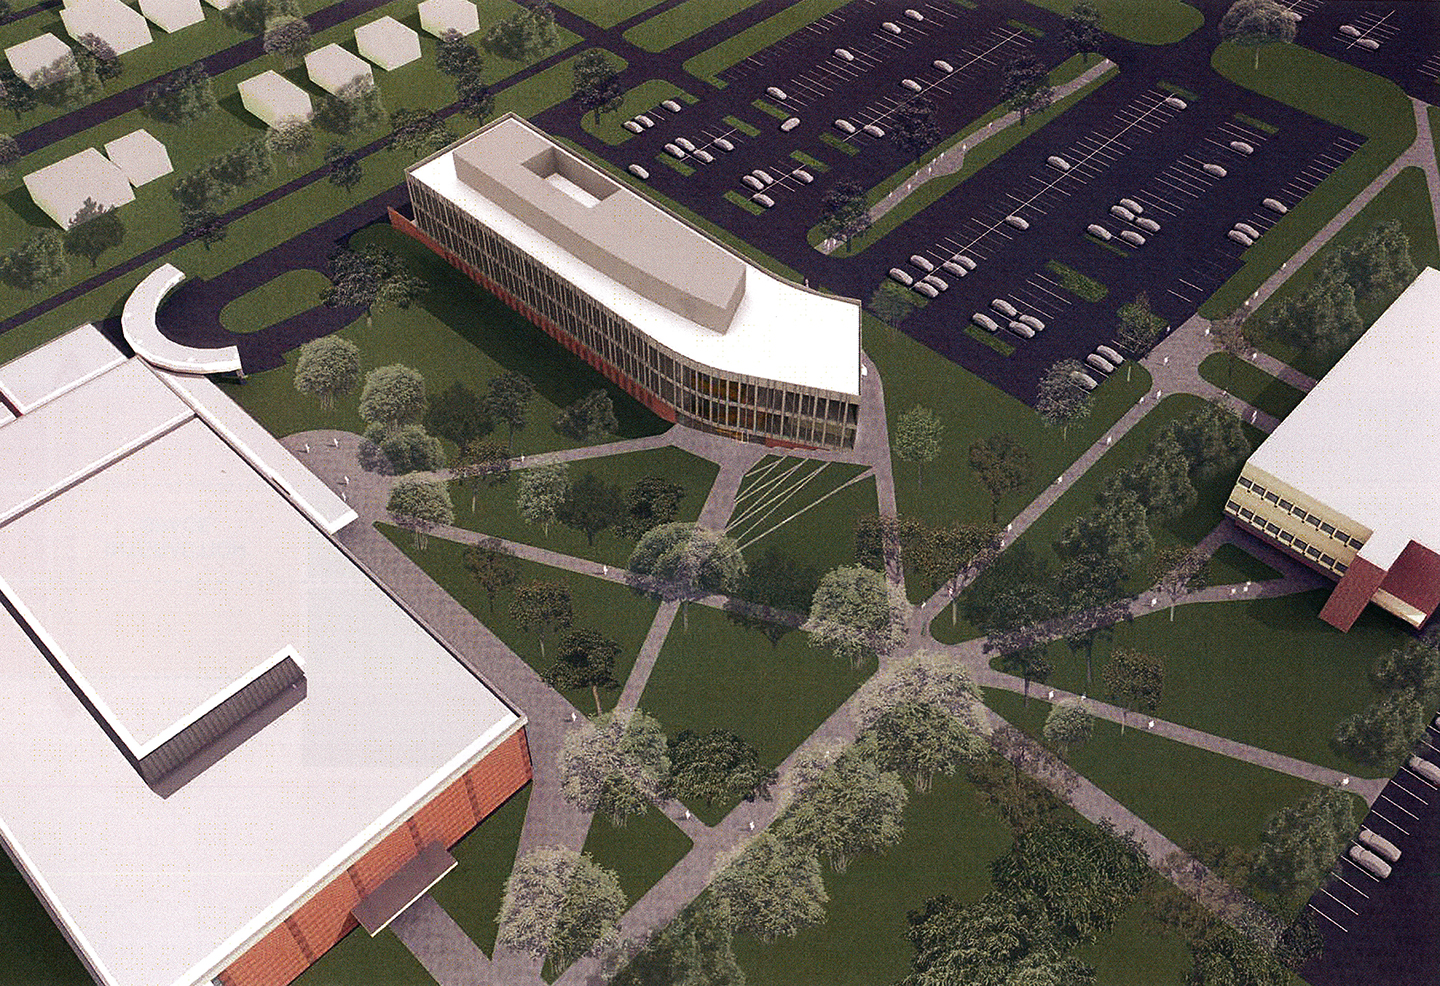 The new Bioscience Innovation Building will be south of SULB and northeast of Lawshe.